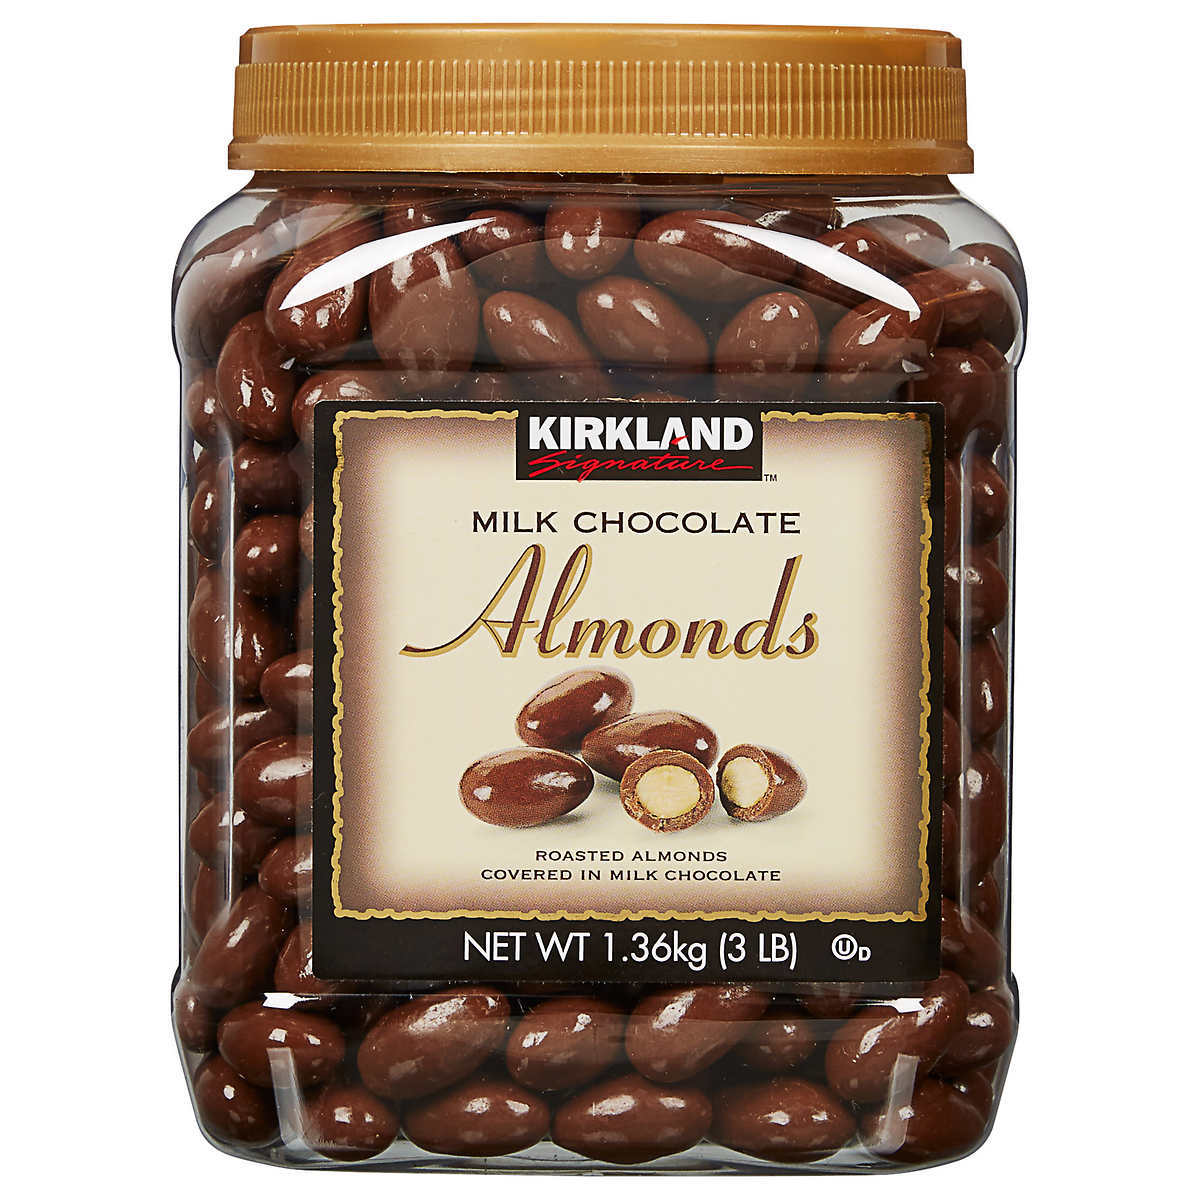 Kirkland Signature Almonds, Milk Chocolate, 3 lb - $29.99